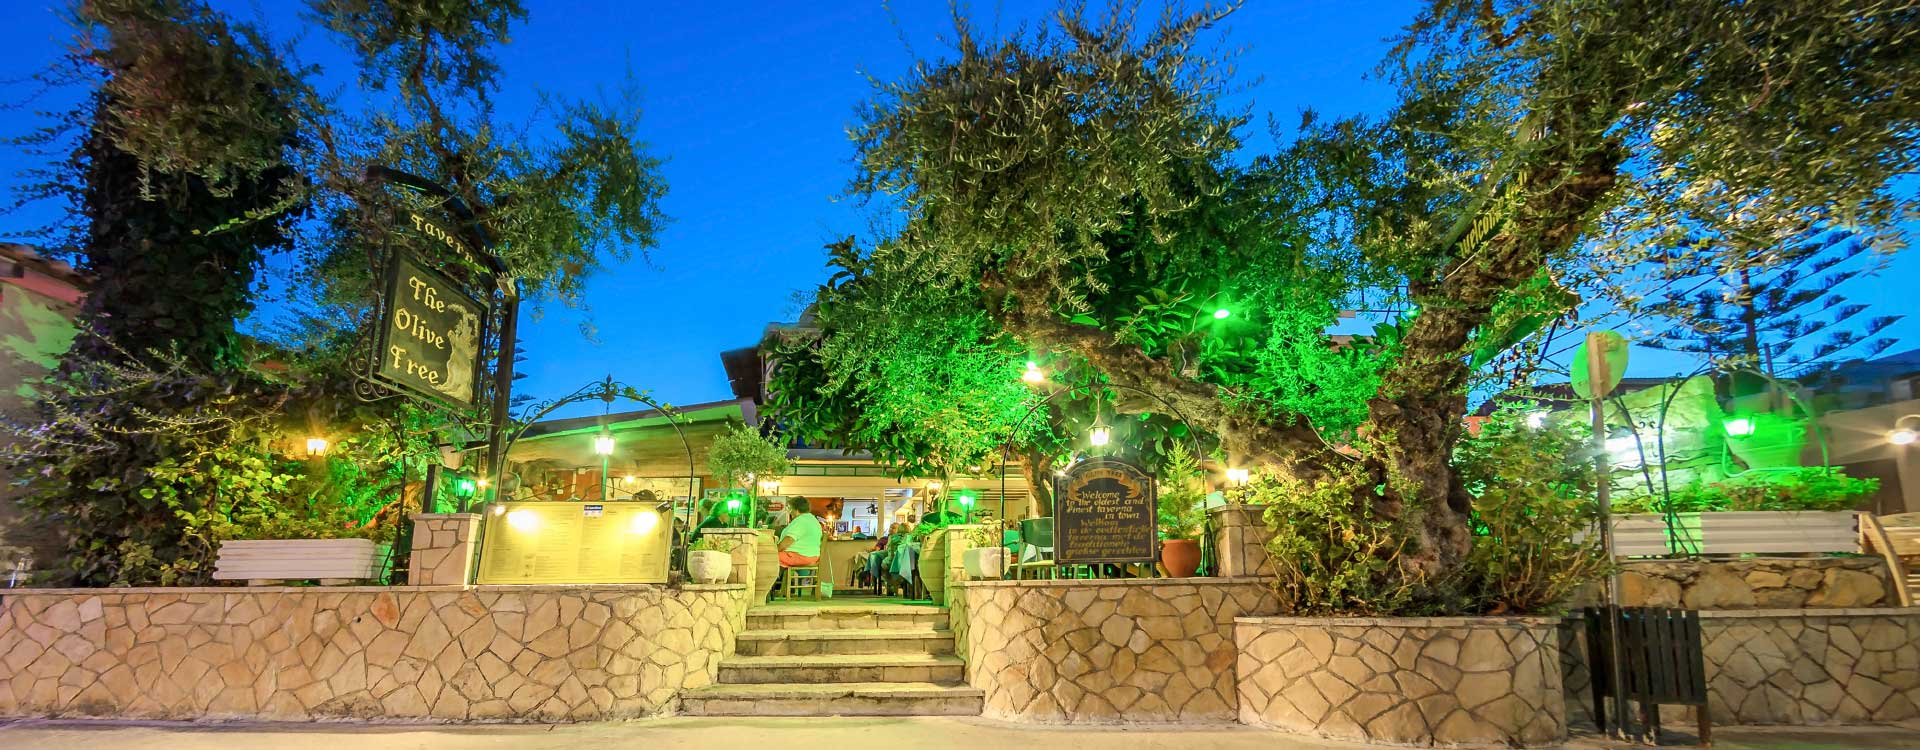 welcome to the olive tree taverna